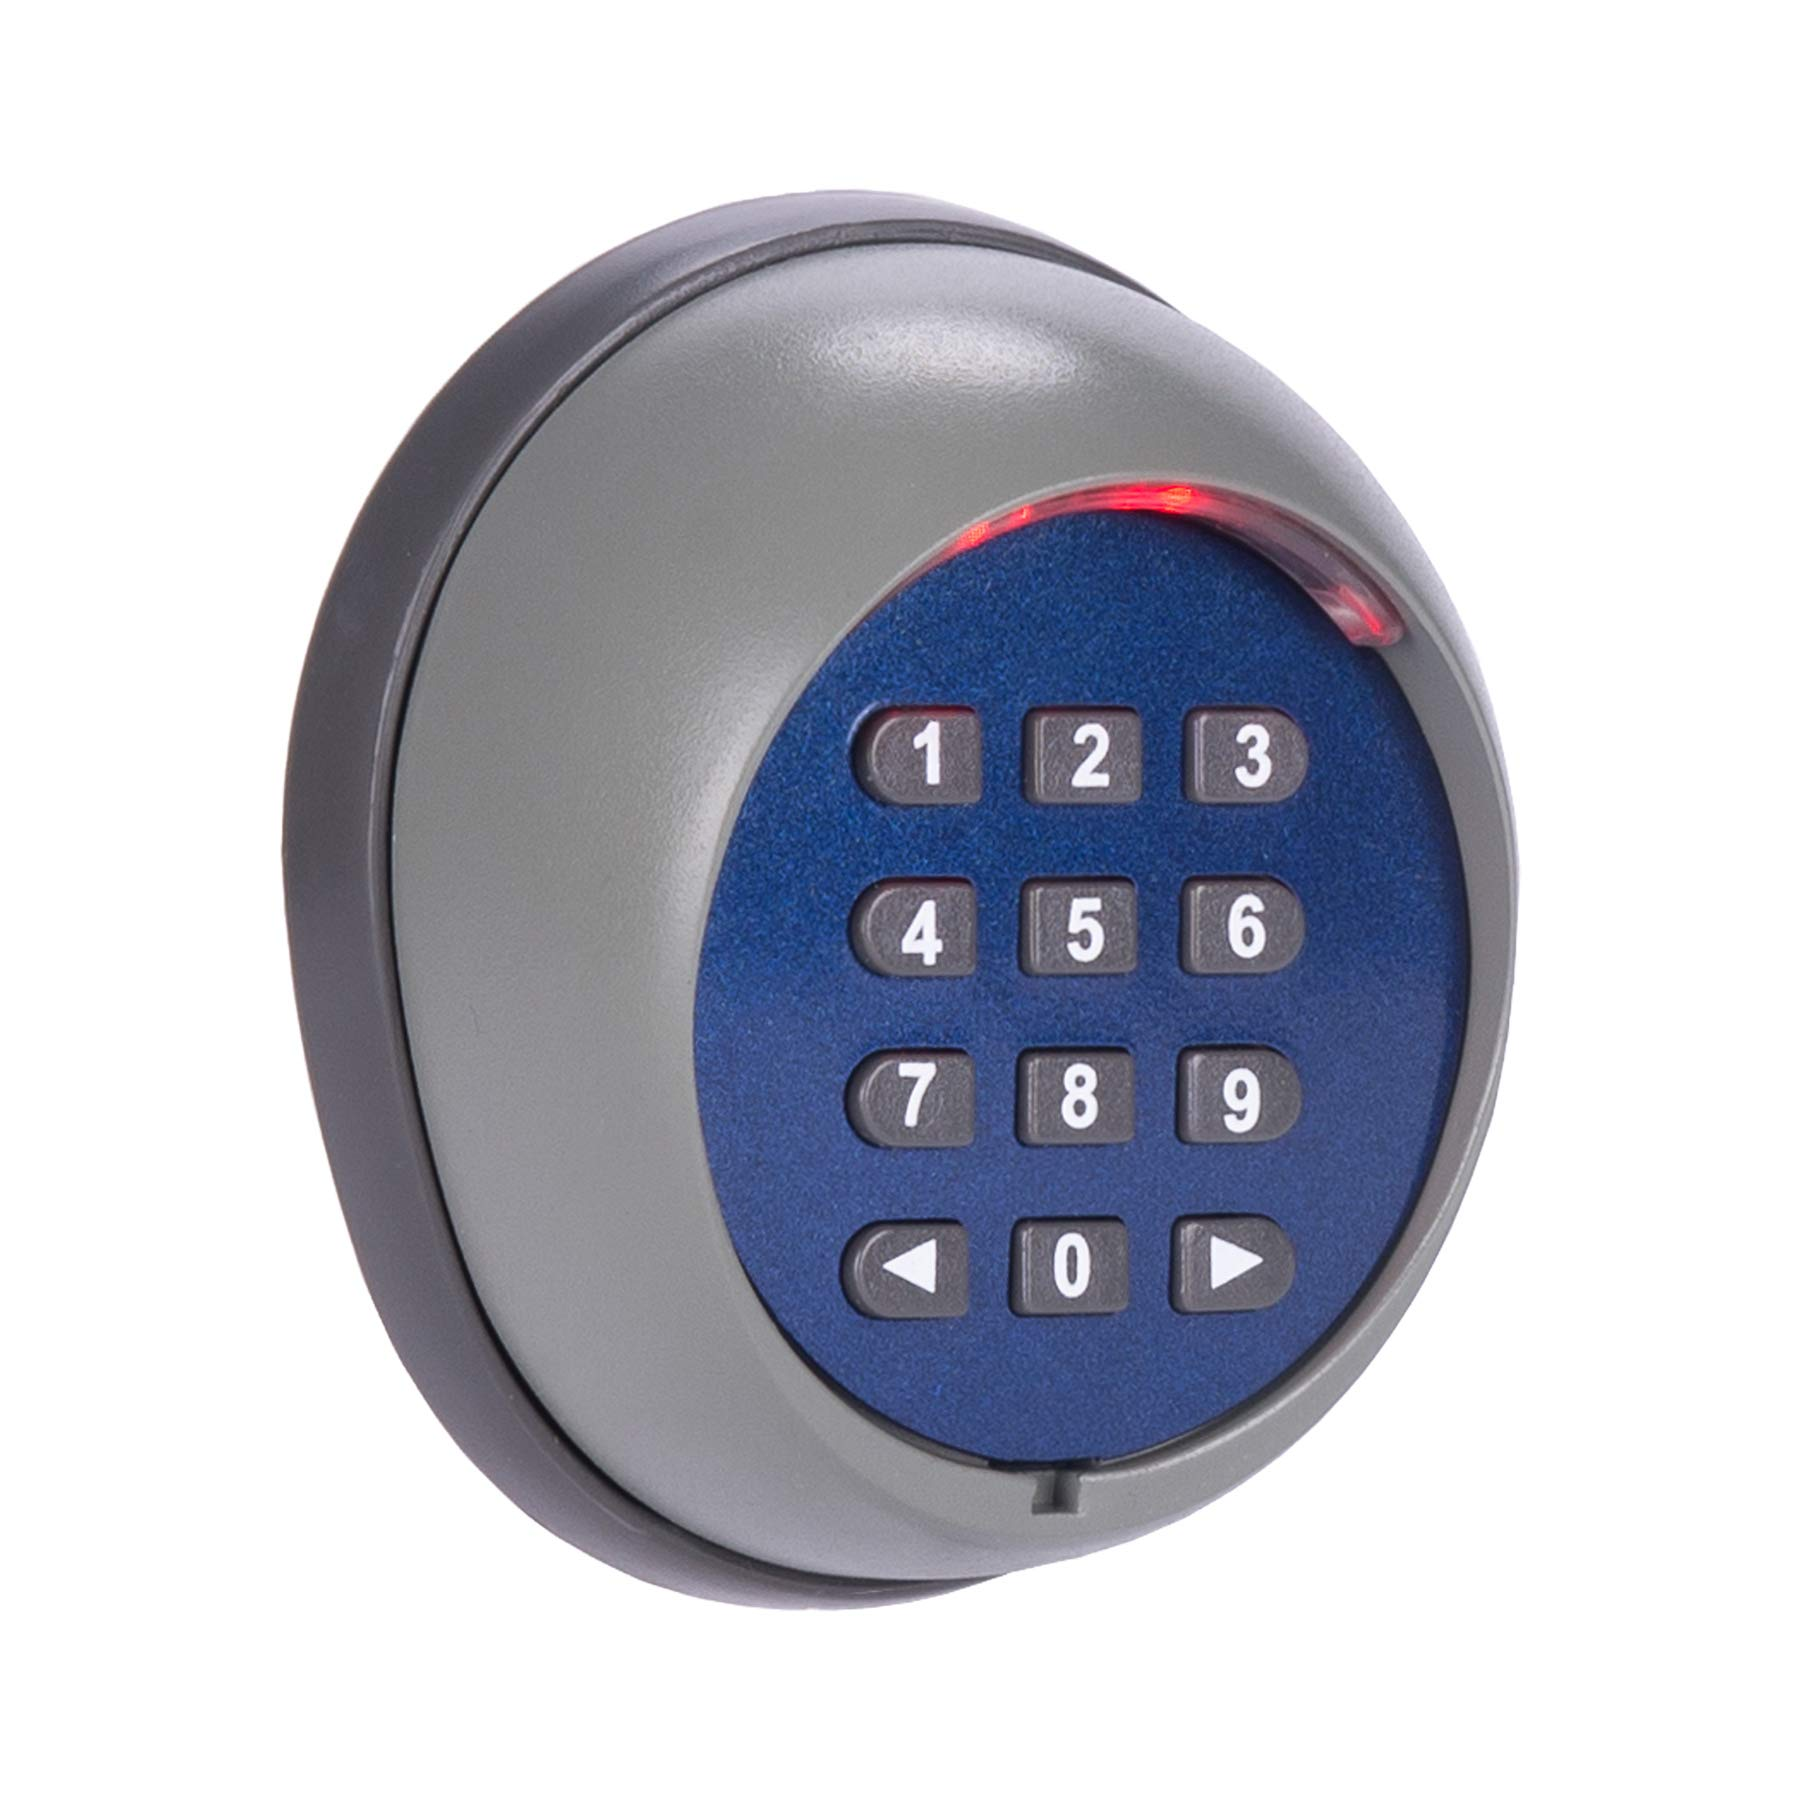 CO-Z Security Keypad Remote Operator Panel Control for Sliding Gate Opener by CO-Z